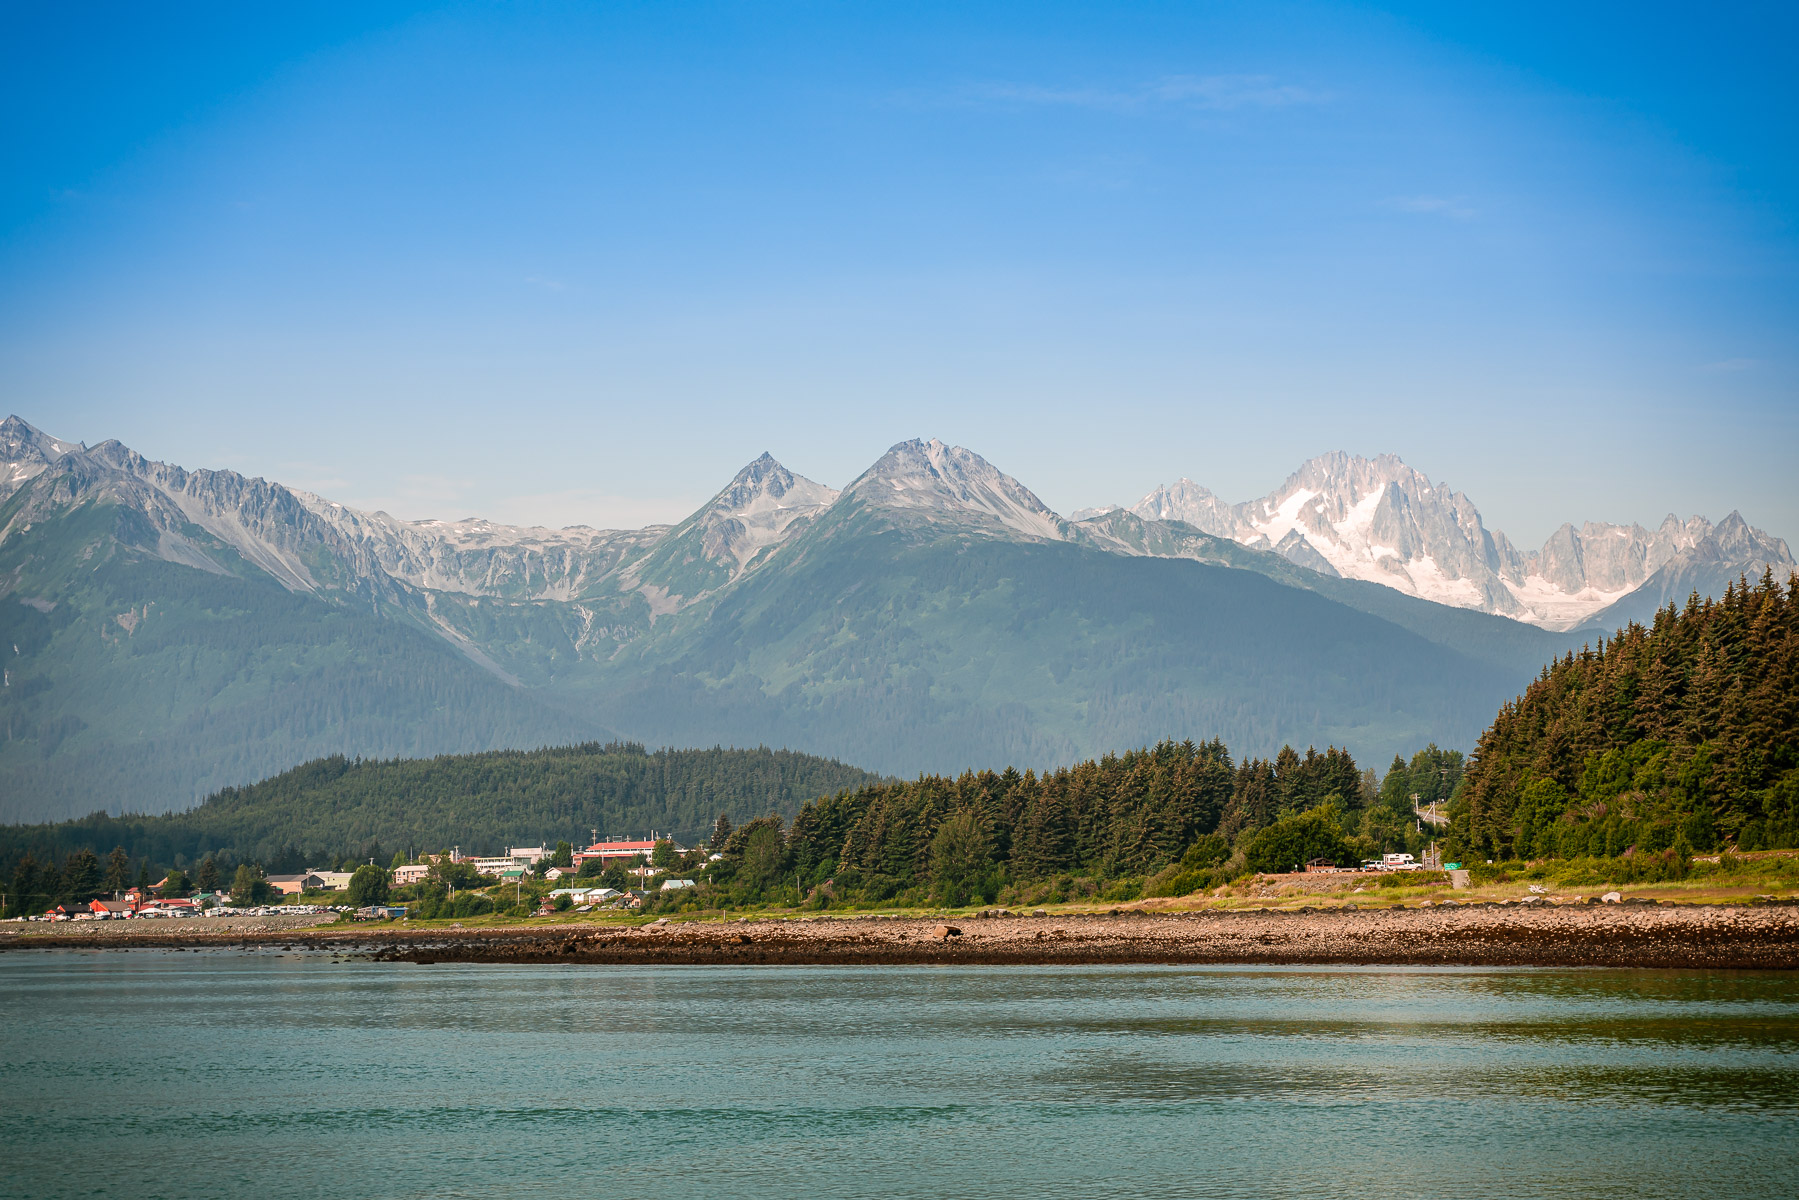 Mountains rise over the small town of Haines, Alaska.